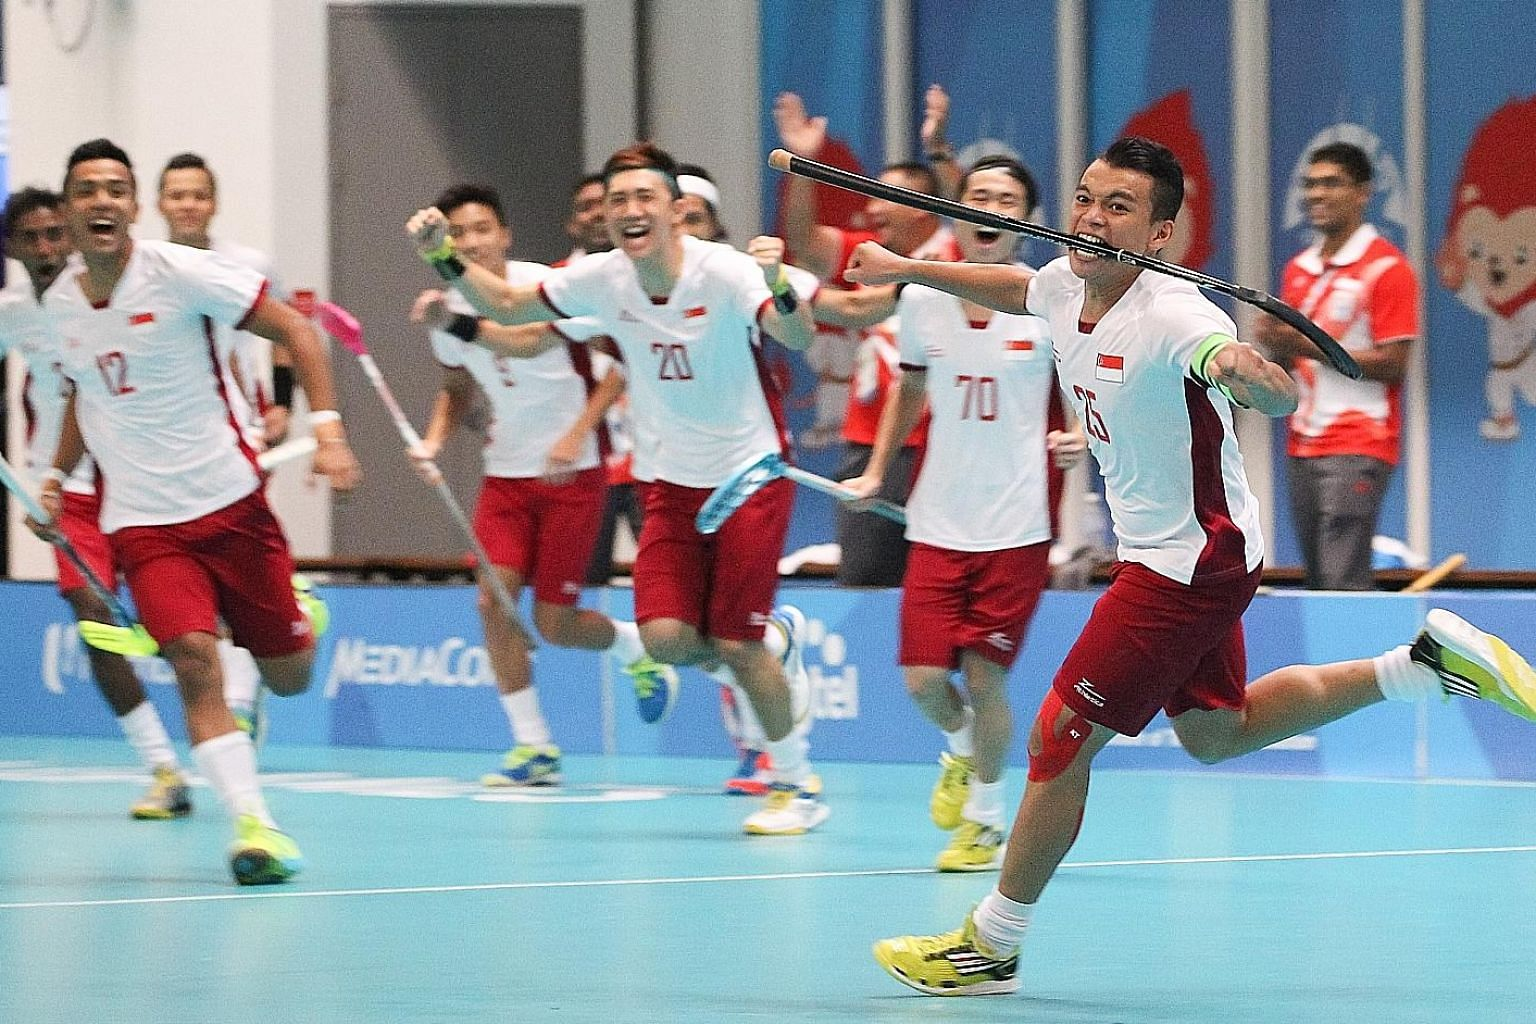 Floorball is among the sports in the record 56 confirmed for the 2019 SEA Games following a SEA Games Federation meeting yesterday. It last featured at the 2015 Games when Singapore won both golds.